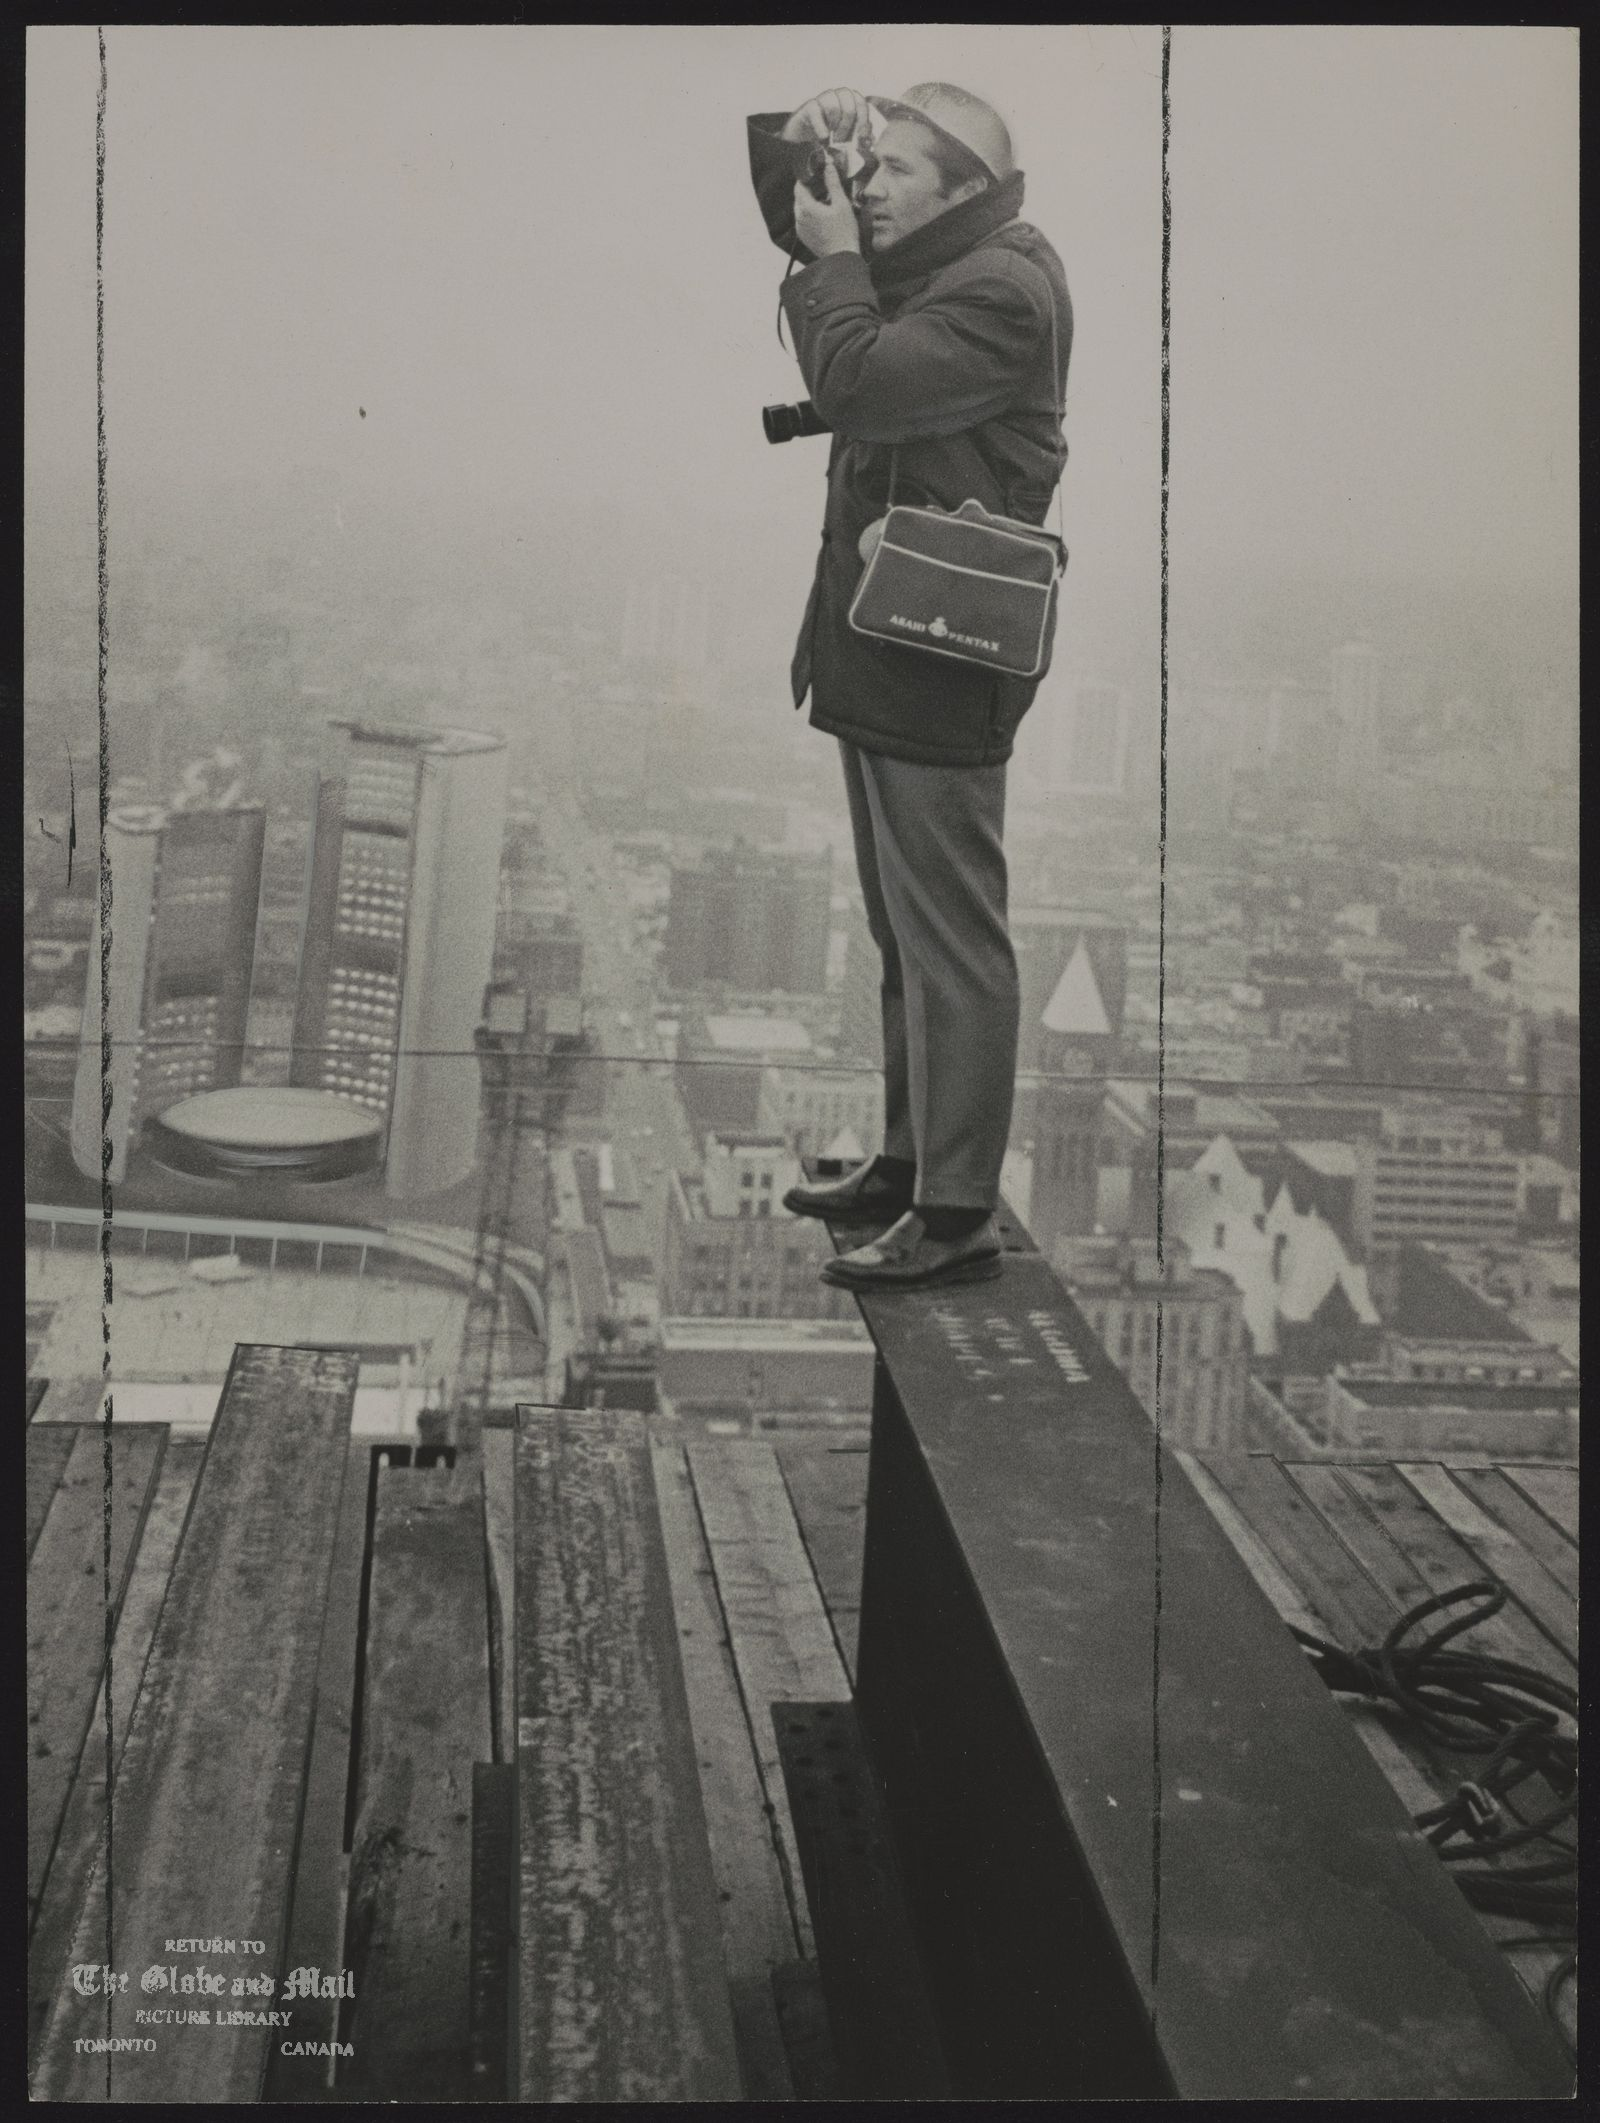 Boris SPREMO Globe and Mail photographer perches on girder at Toronto Dominion Centre to take another view from the top.